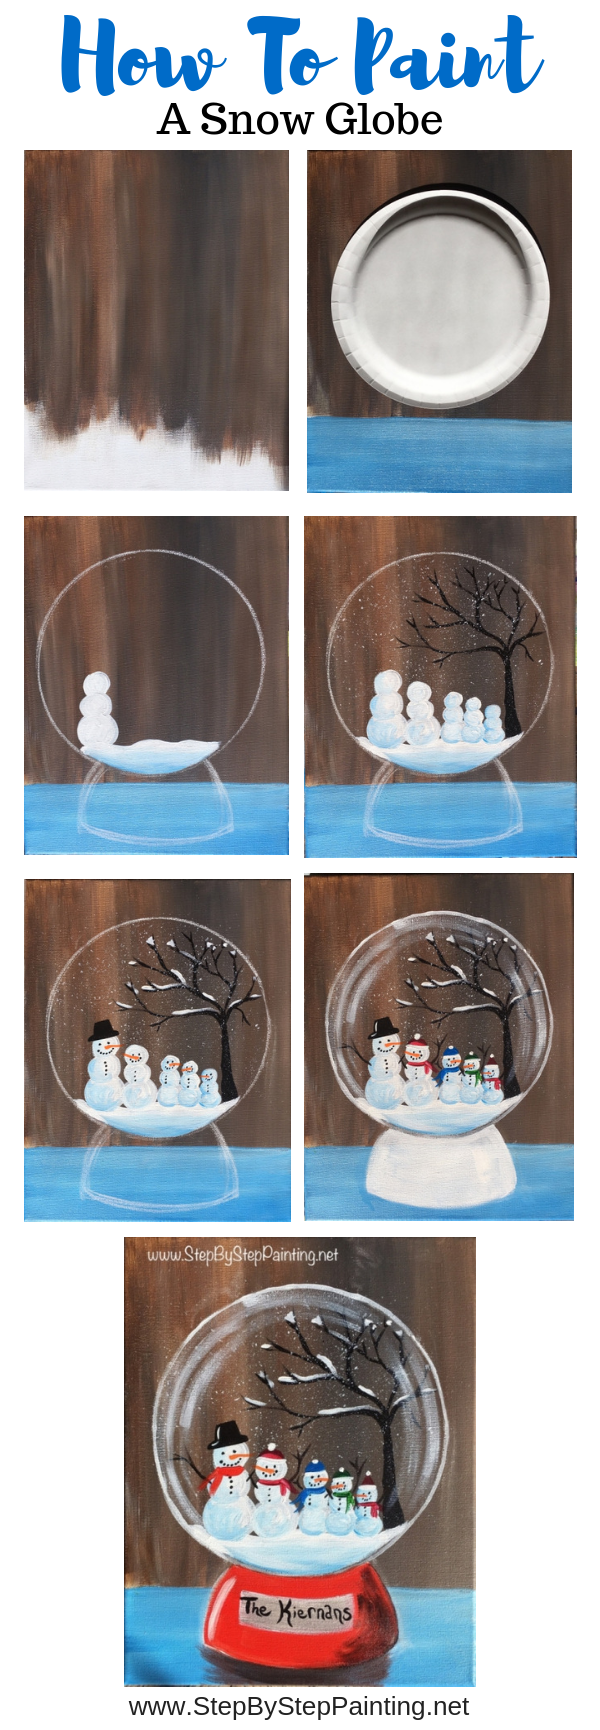 How To Paint A Snow Globe Step By Step Painting